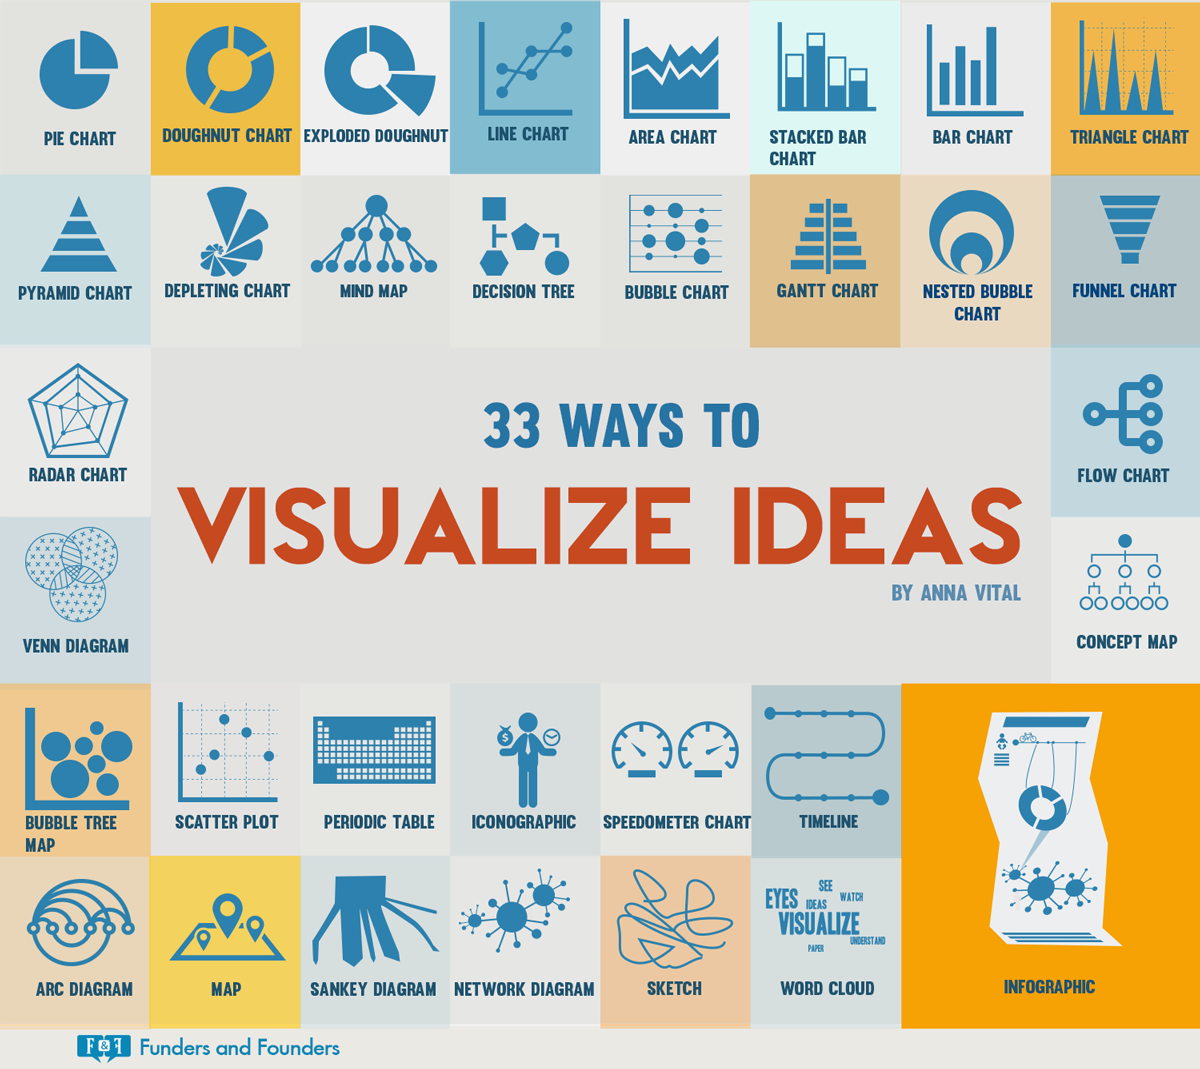 33 Creative Ways to Visualize Ideas [Infographic] | Social Media Today